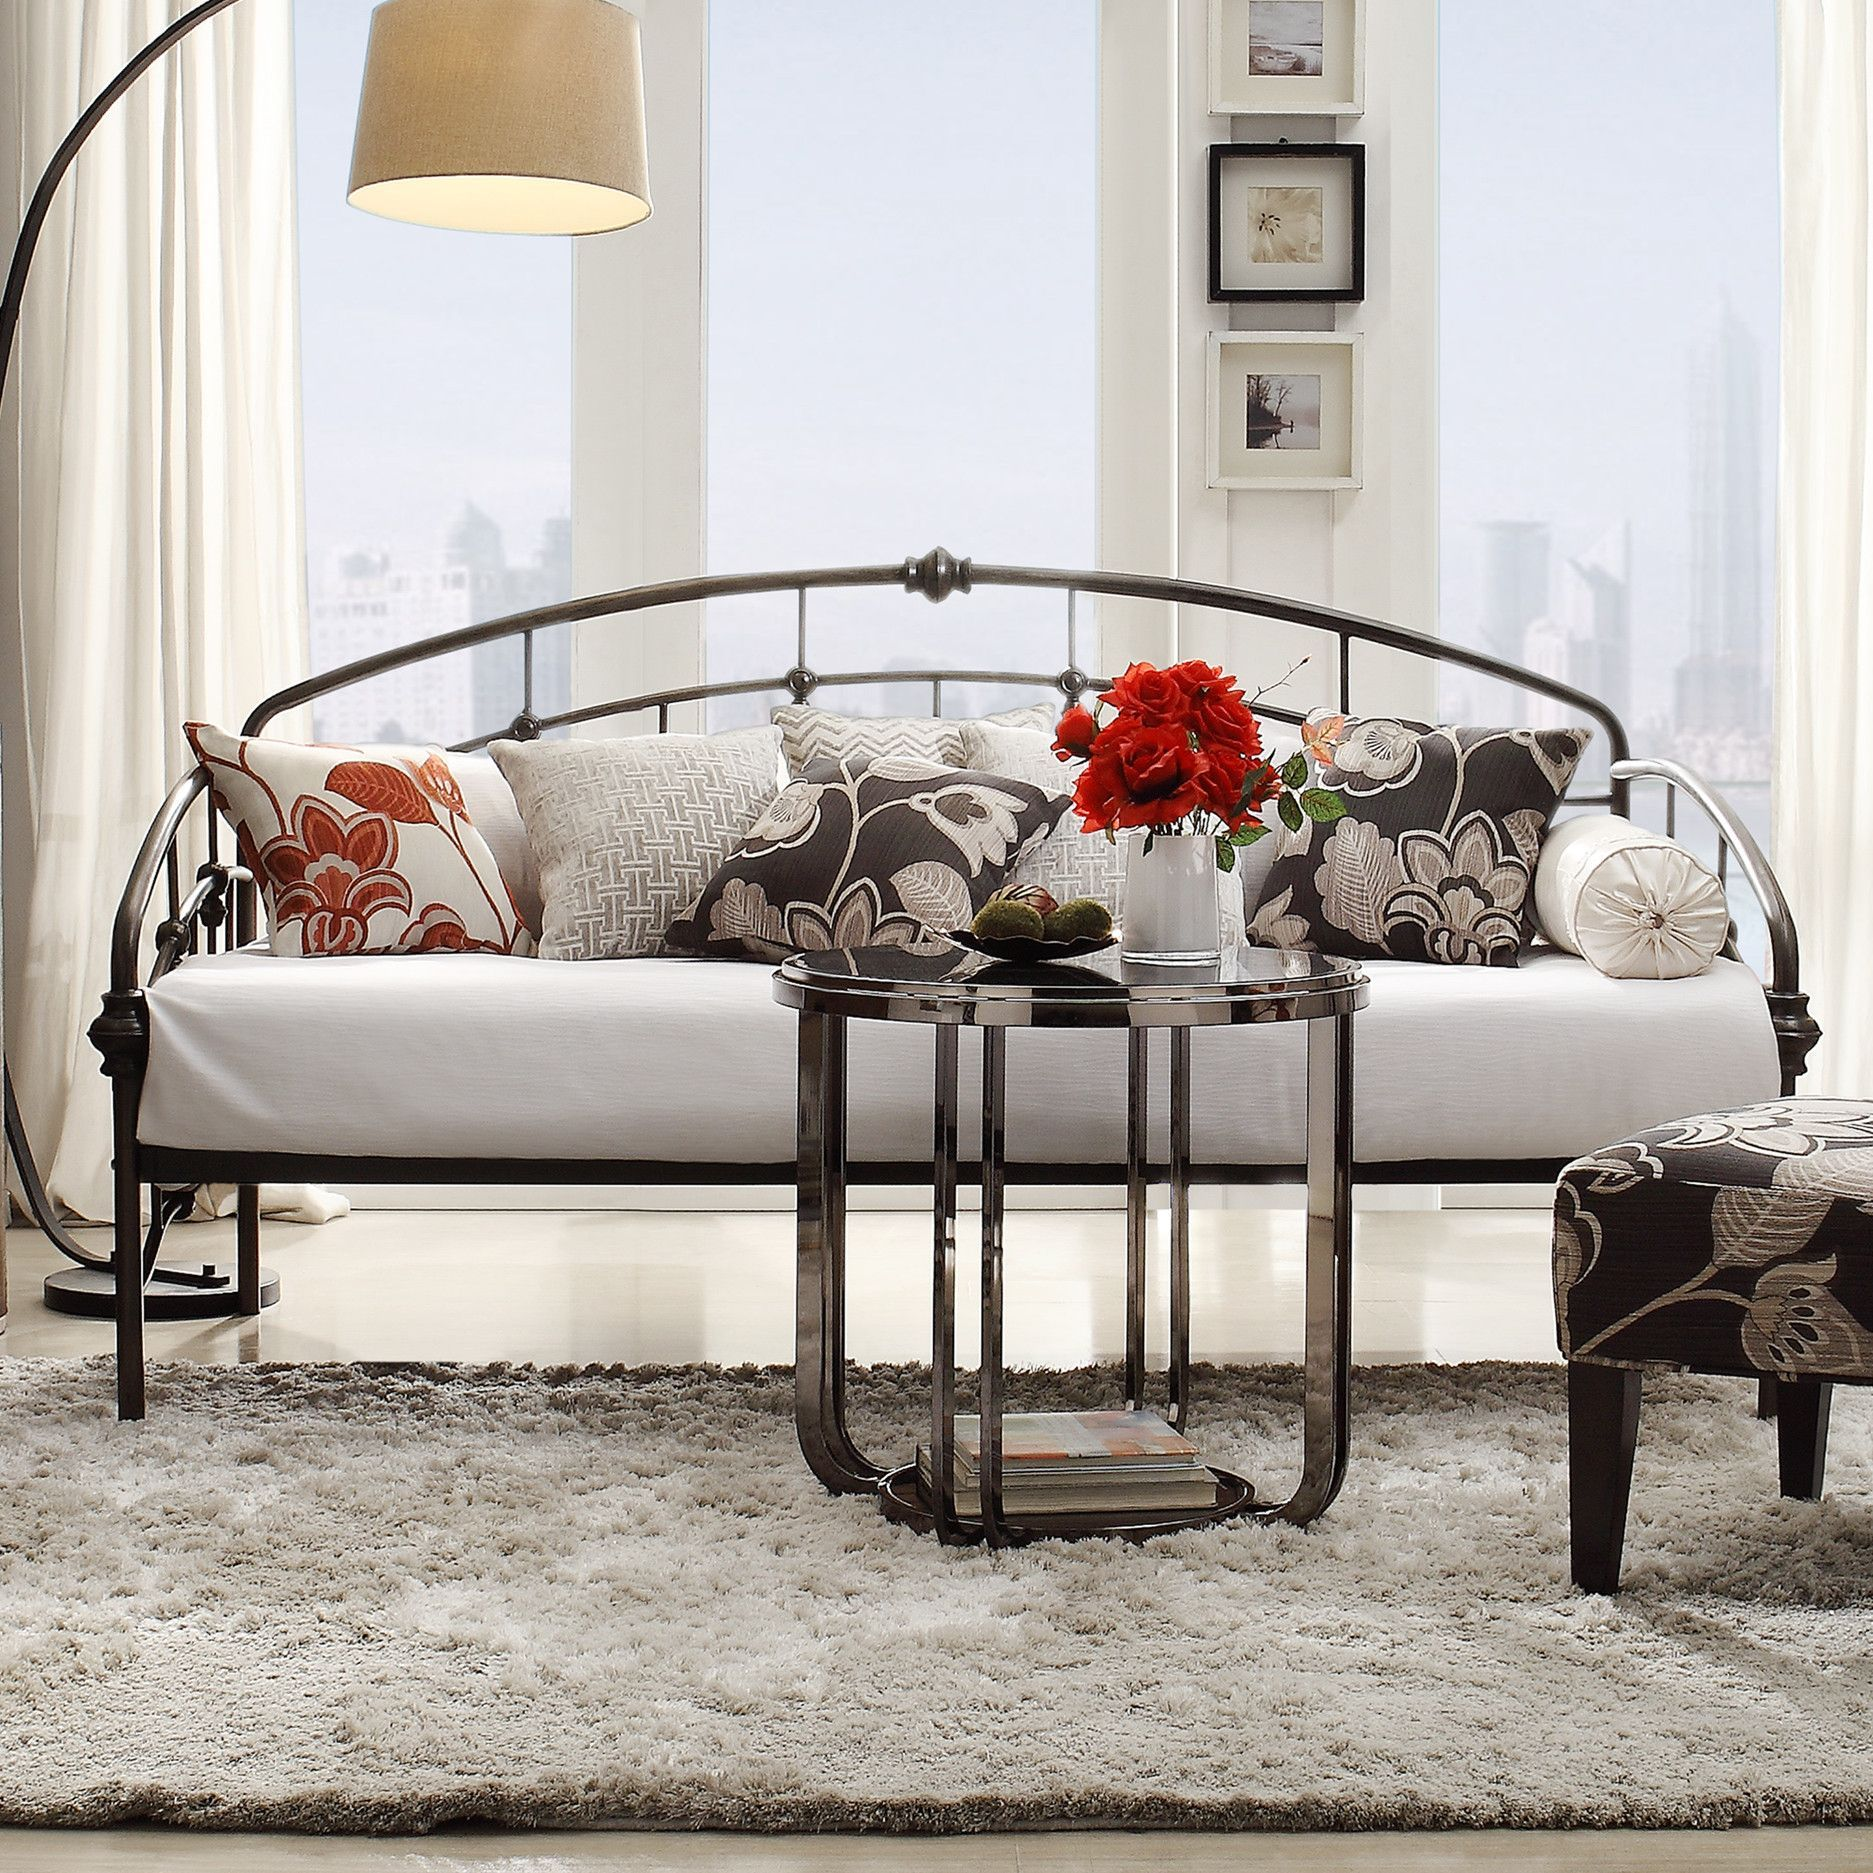 The Wayfair Daybed Of Today Comfortable And Beautiful In 2020 Country House Decor Home Decor Small Guest Bedroom